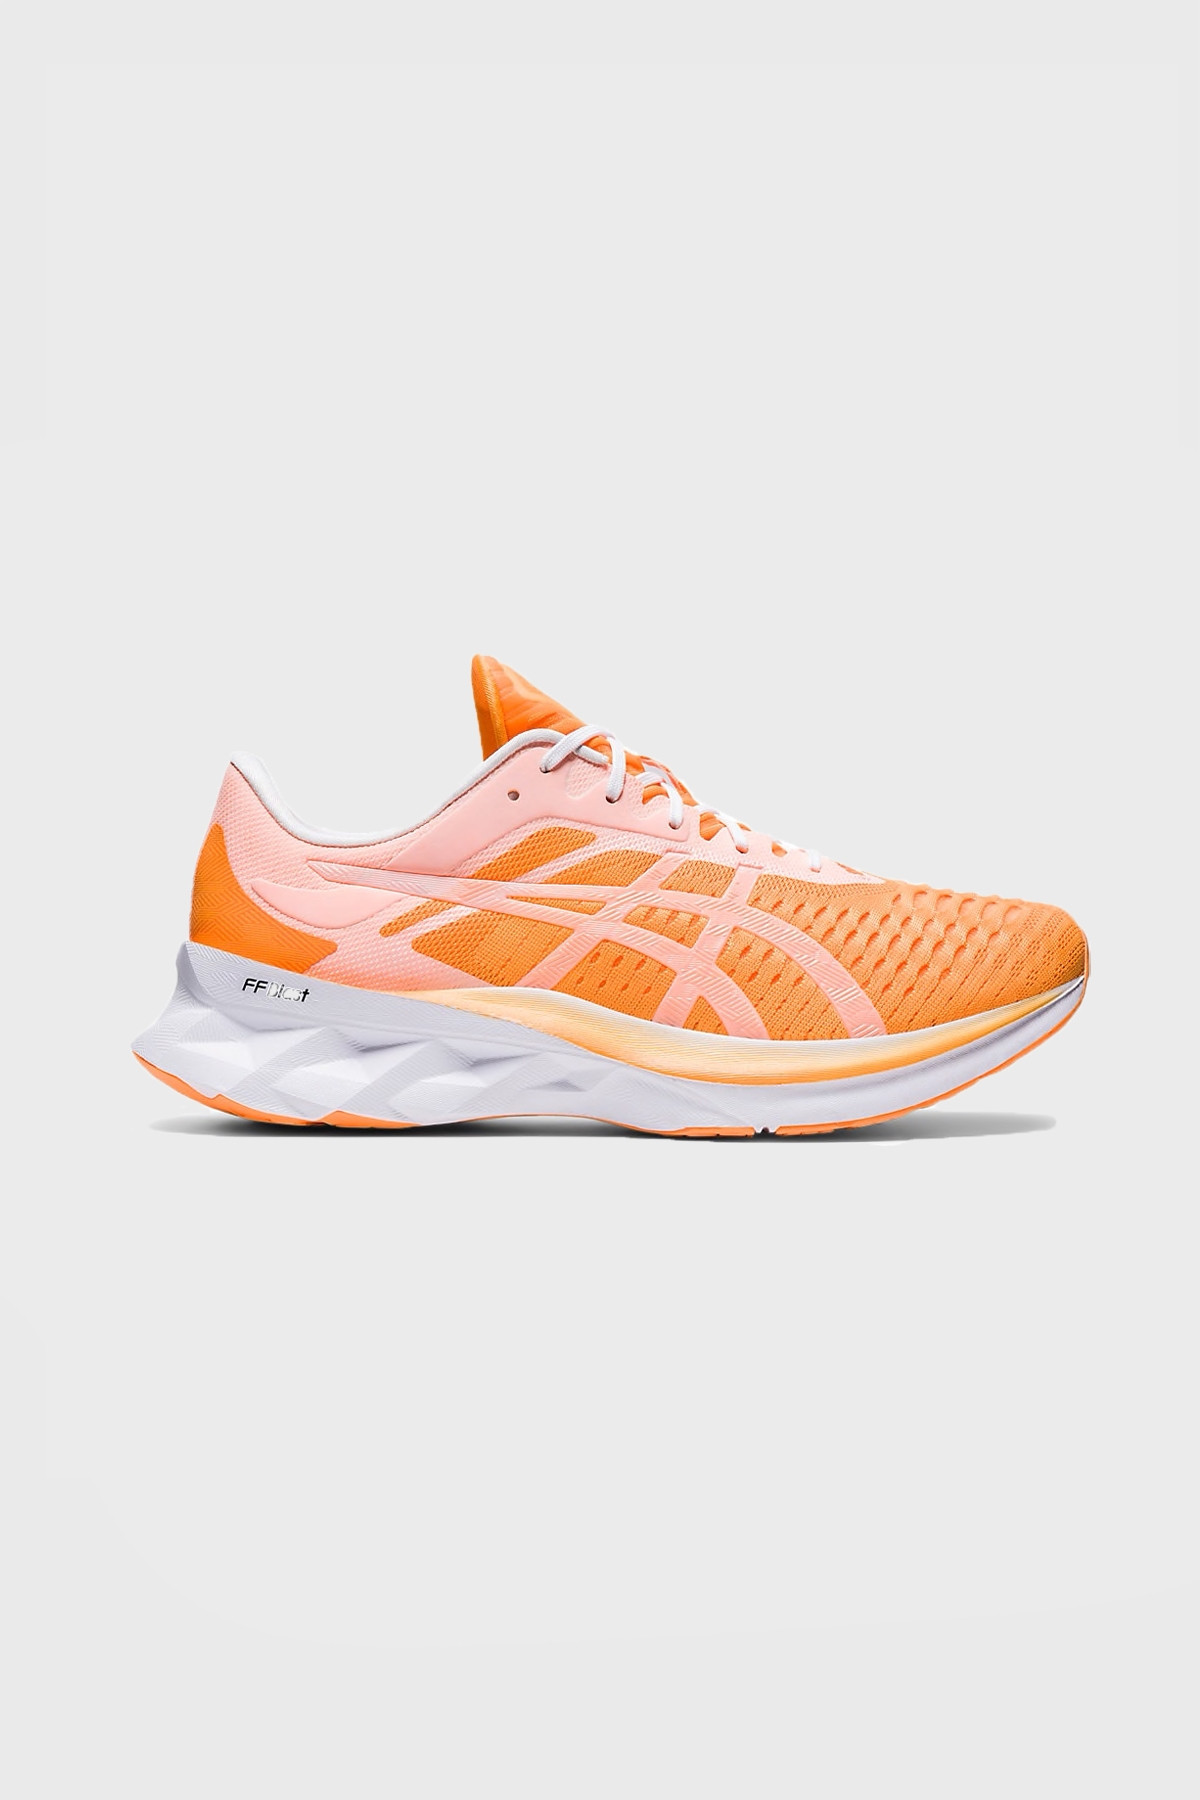 Asics - Novablast - Orange white